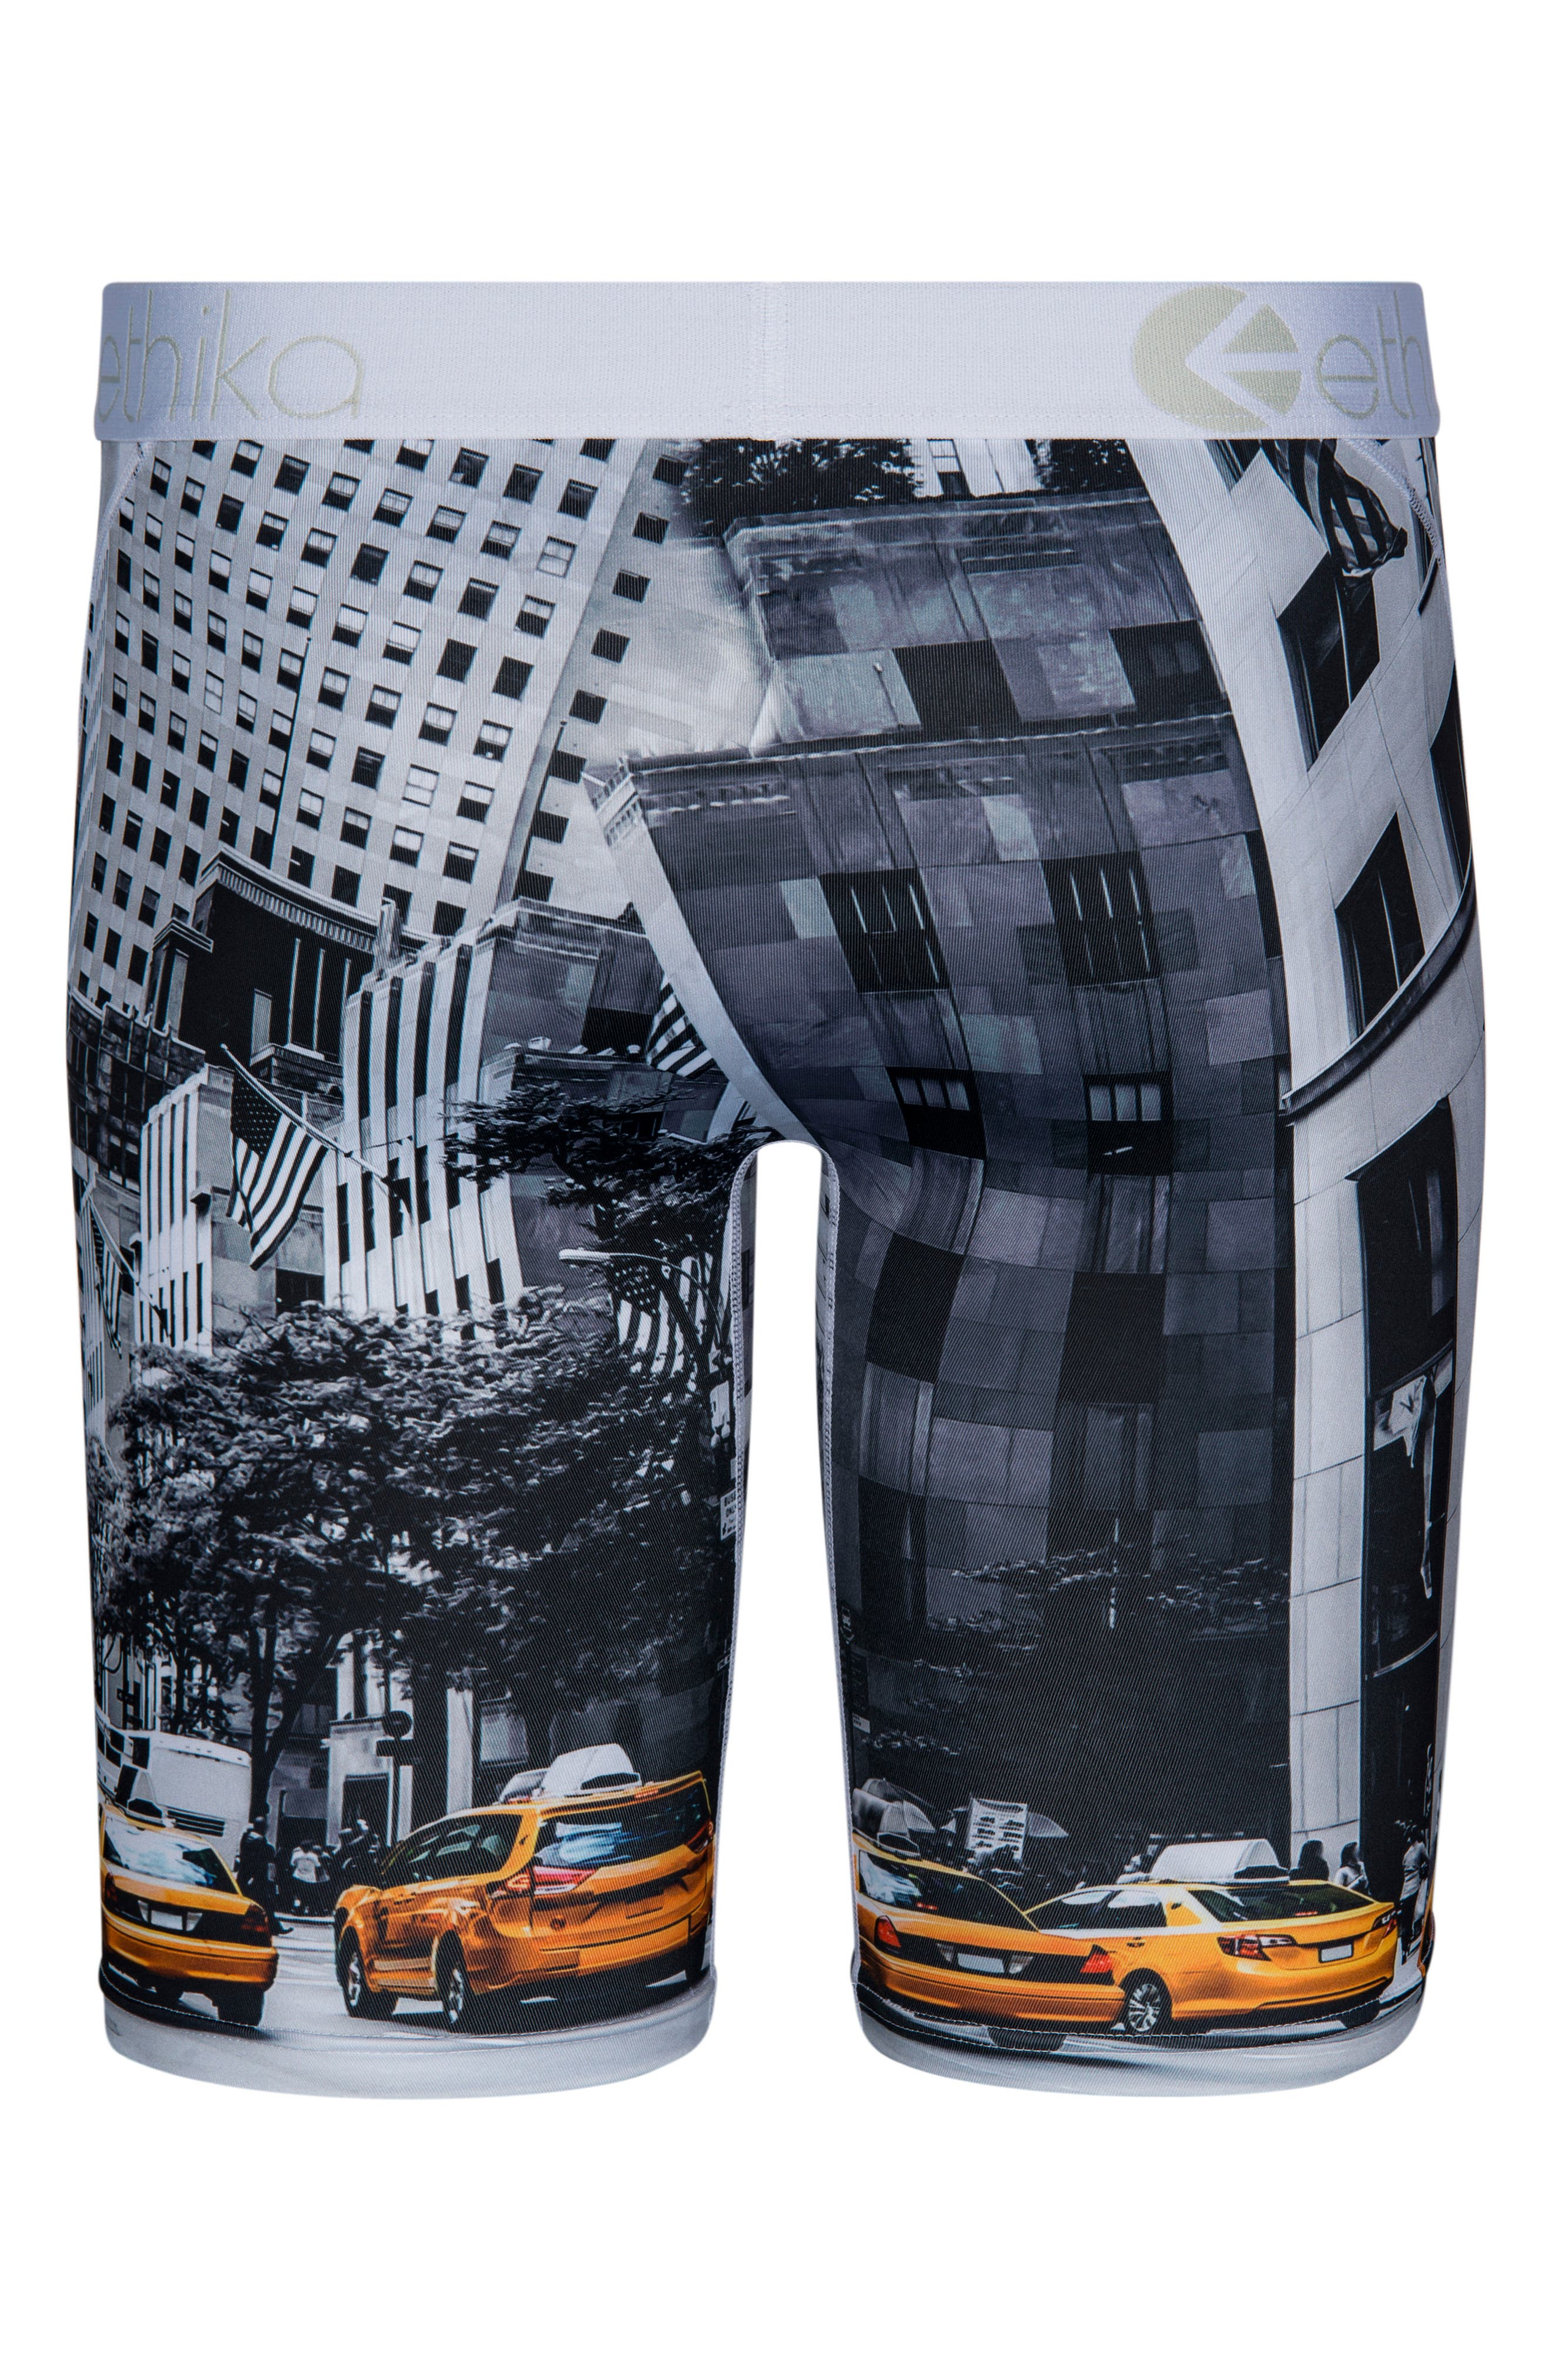 Cab City Stretch Boxer Briefs,                             Alternate thumbnail 2, color,                             020